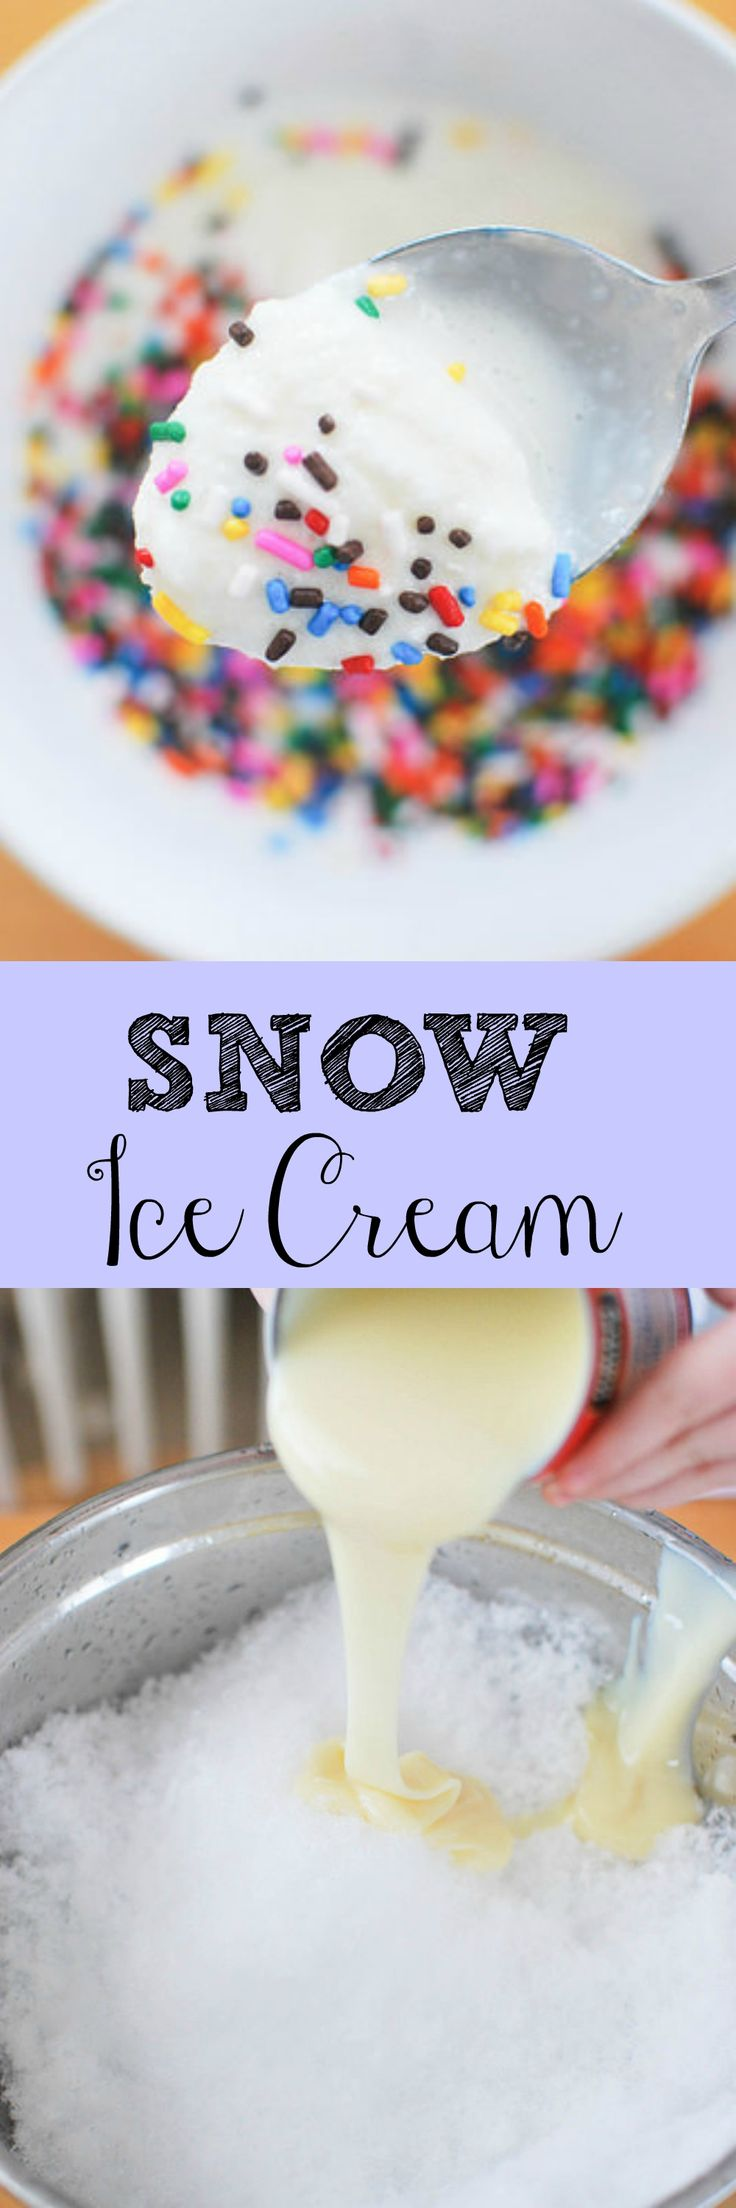 Snow Ice Cream - Stick a bowl outside before a big snow so you can make snow ice cream! So easy - the perfect project for kids!